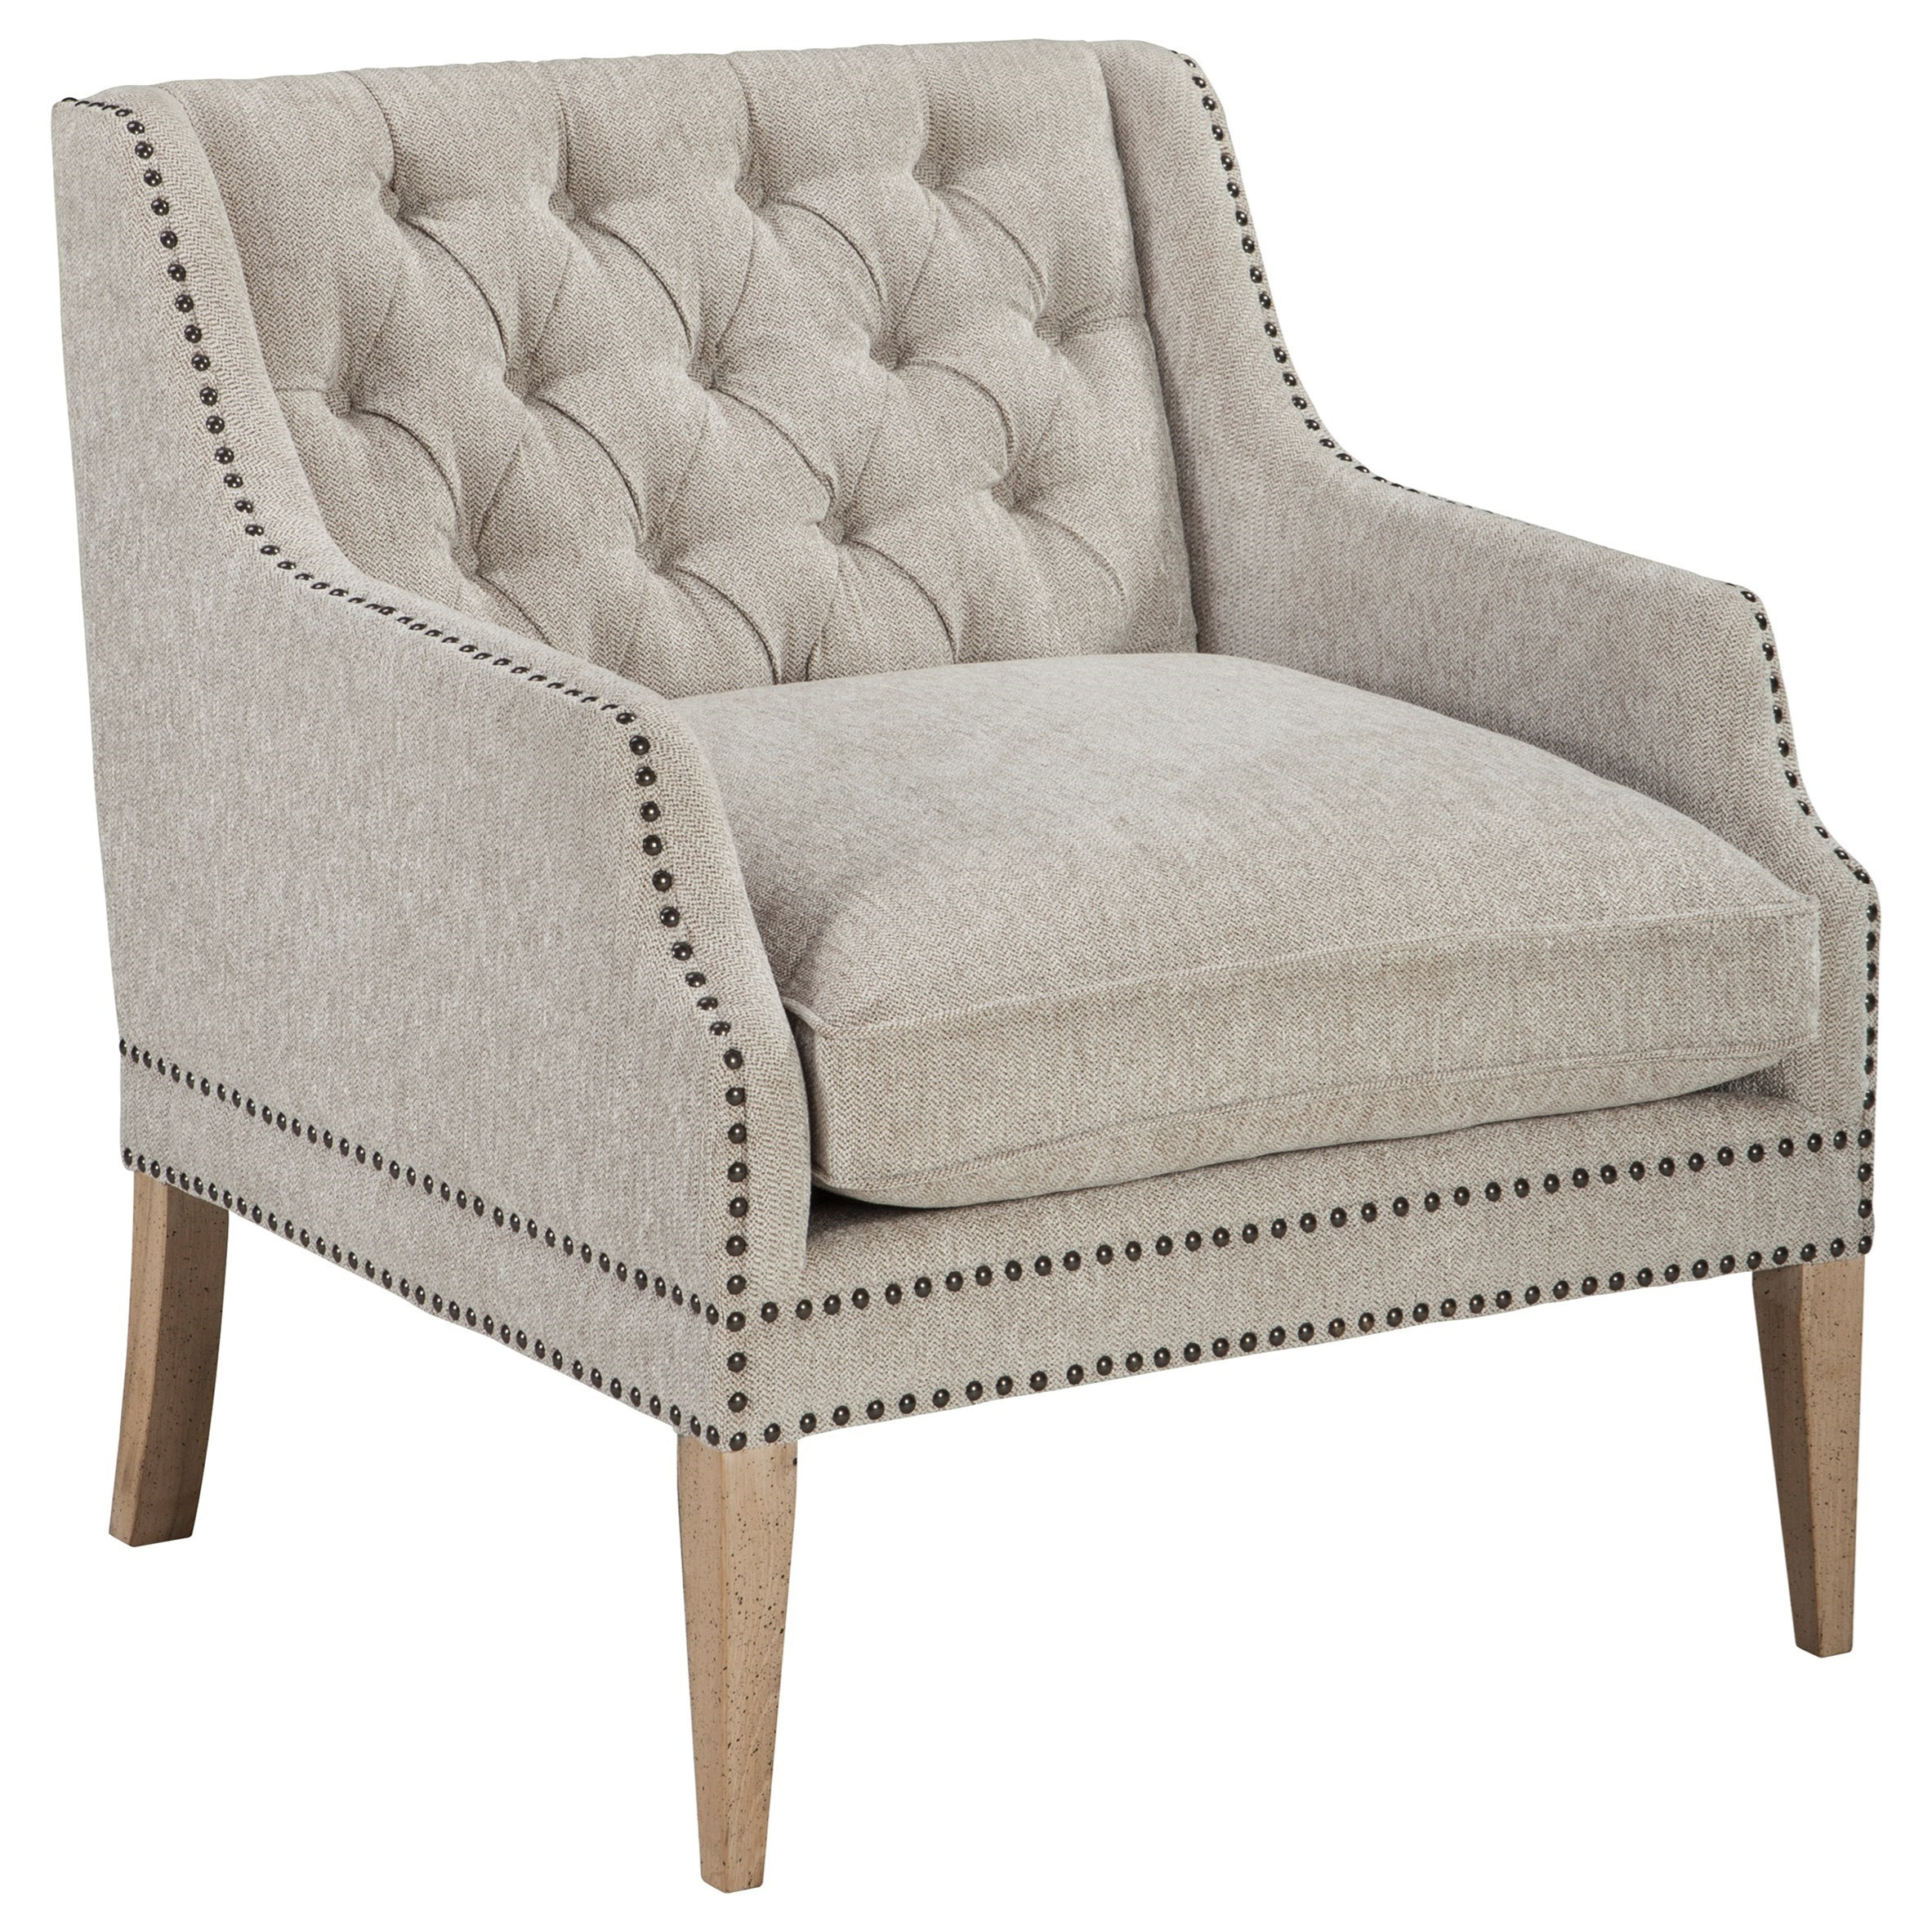 Signature Design by Ashley Trivia Accent Chair - Item Number: A3000039